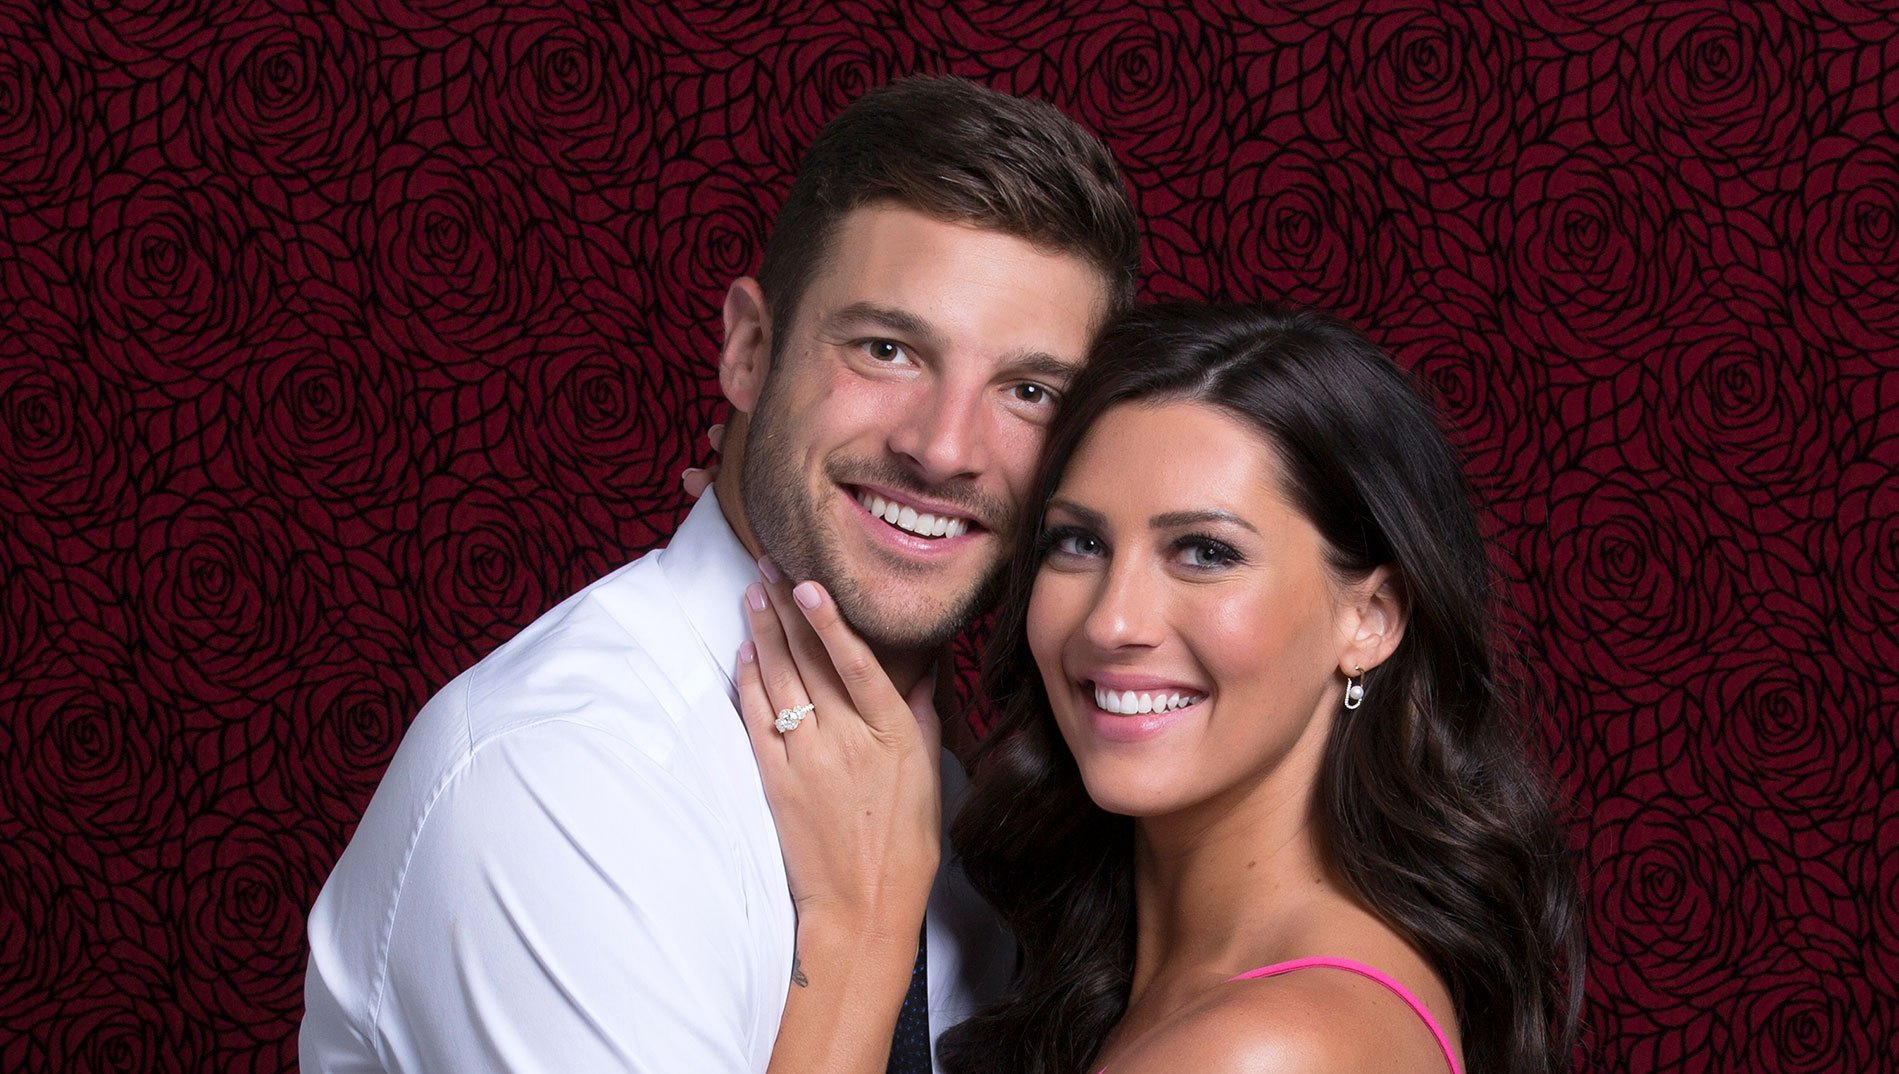 Bachelorette's Garrett Yrigoyen Reveals He Was Born With a Hole in His Heart